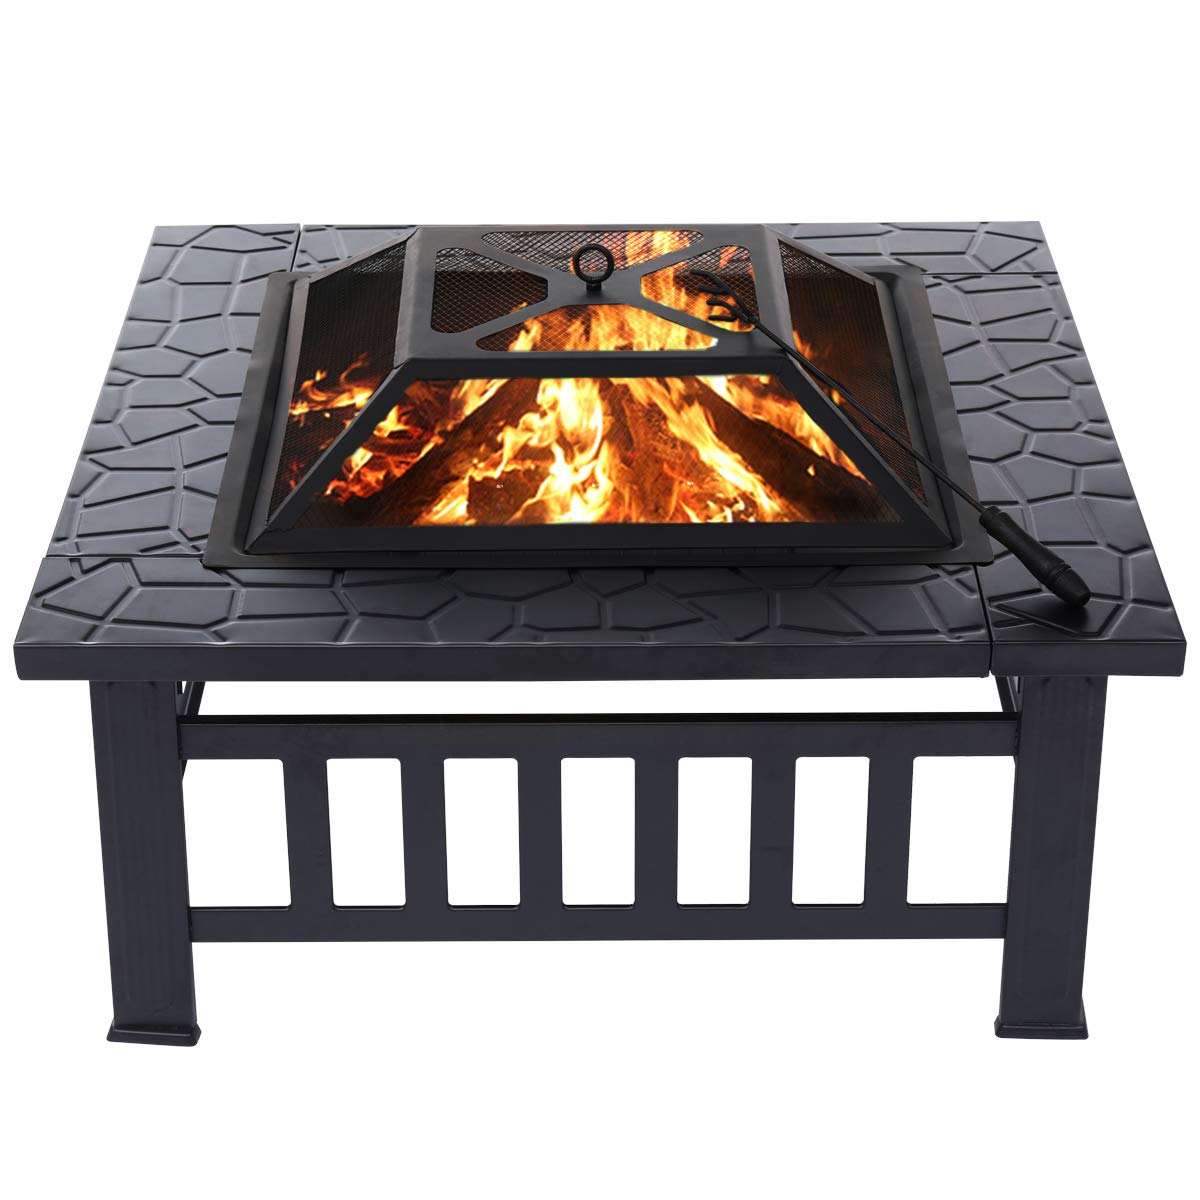 KINGSO 34'' Outdoor Fire Pit Metal Square Firepit Patio Stove Wood Burning BBQ Grill Fire Pit Bowl with Spark Screen Cover, Log Grate, Poker for Backyard Garden Camping Picnic Bonfire